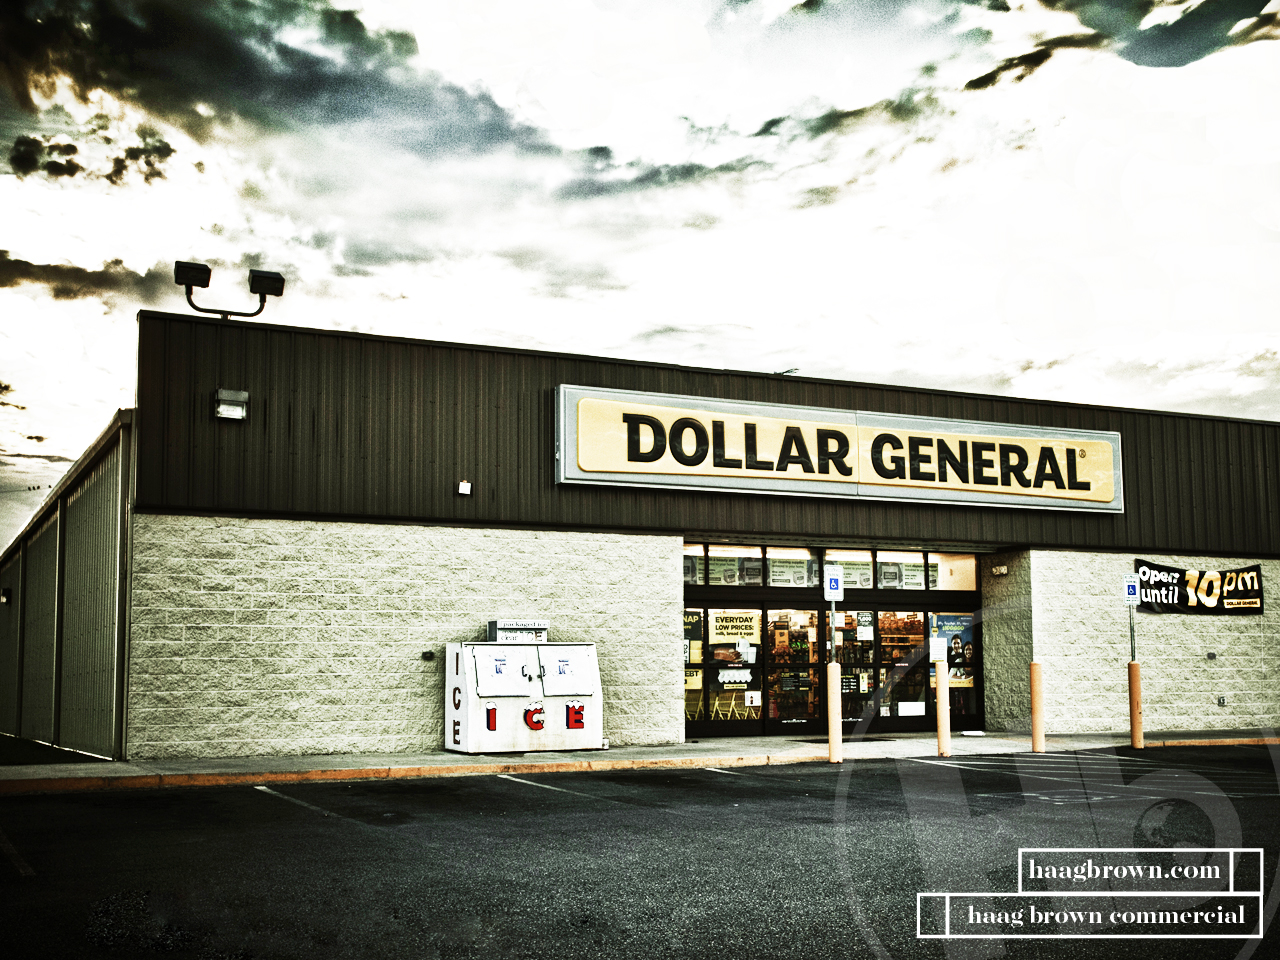 Dollar General is an Equal Opportunity Employer Product availability, styles, colors, brands, promotions and prices may vary between stores and online. Early sell-out possible on special purchase items, and quantities may be otherwise limited.